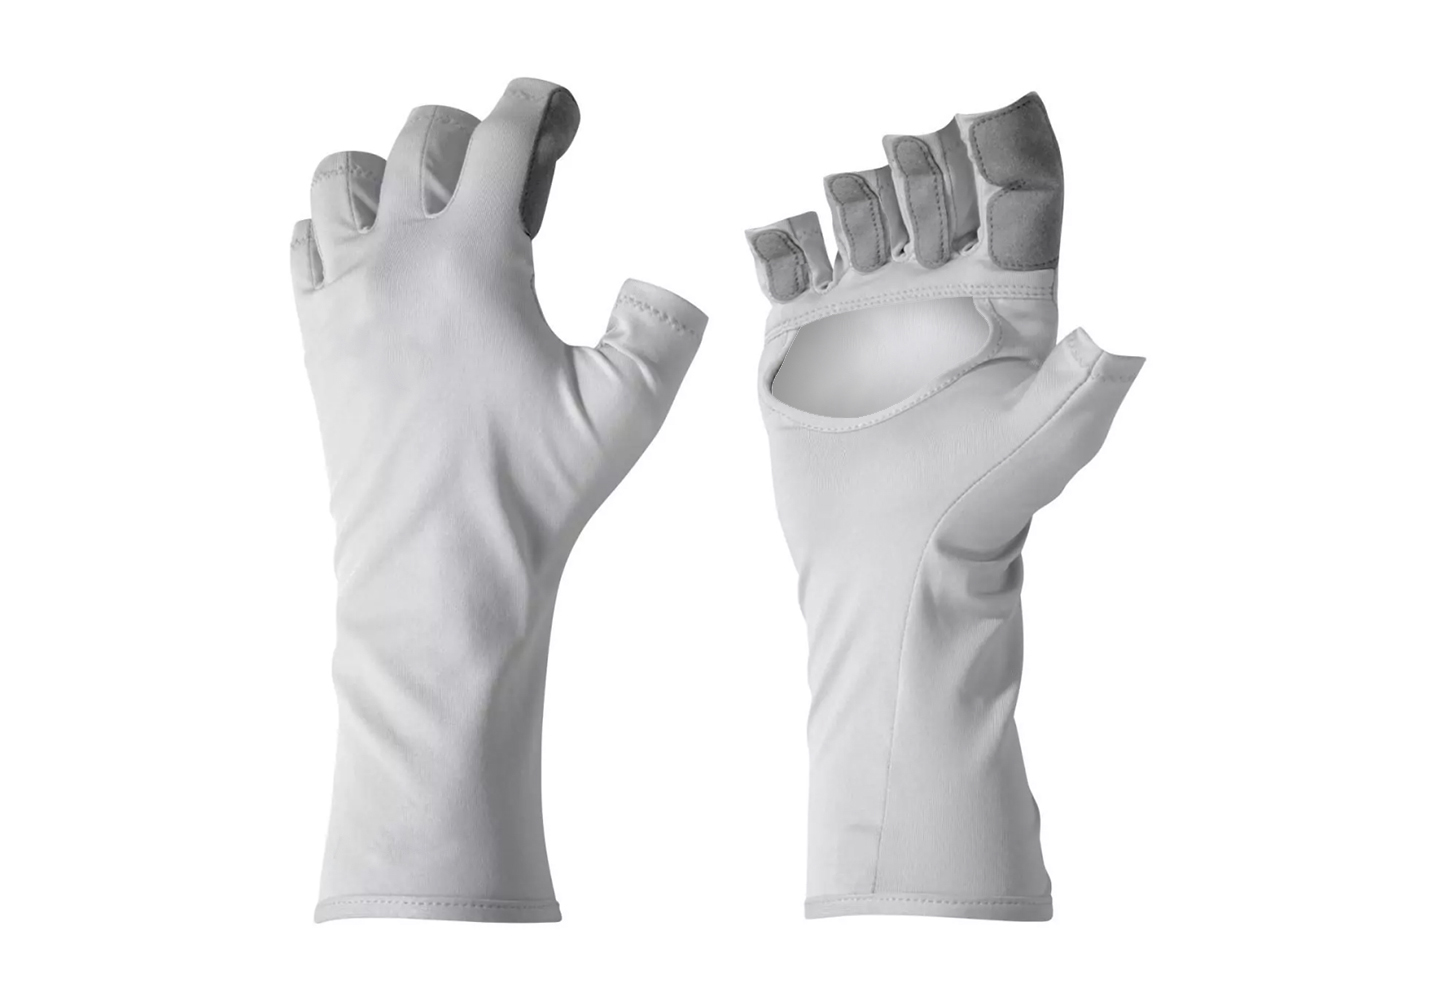 Fingerless Nylon Gloves/IWG-017-W